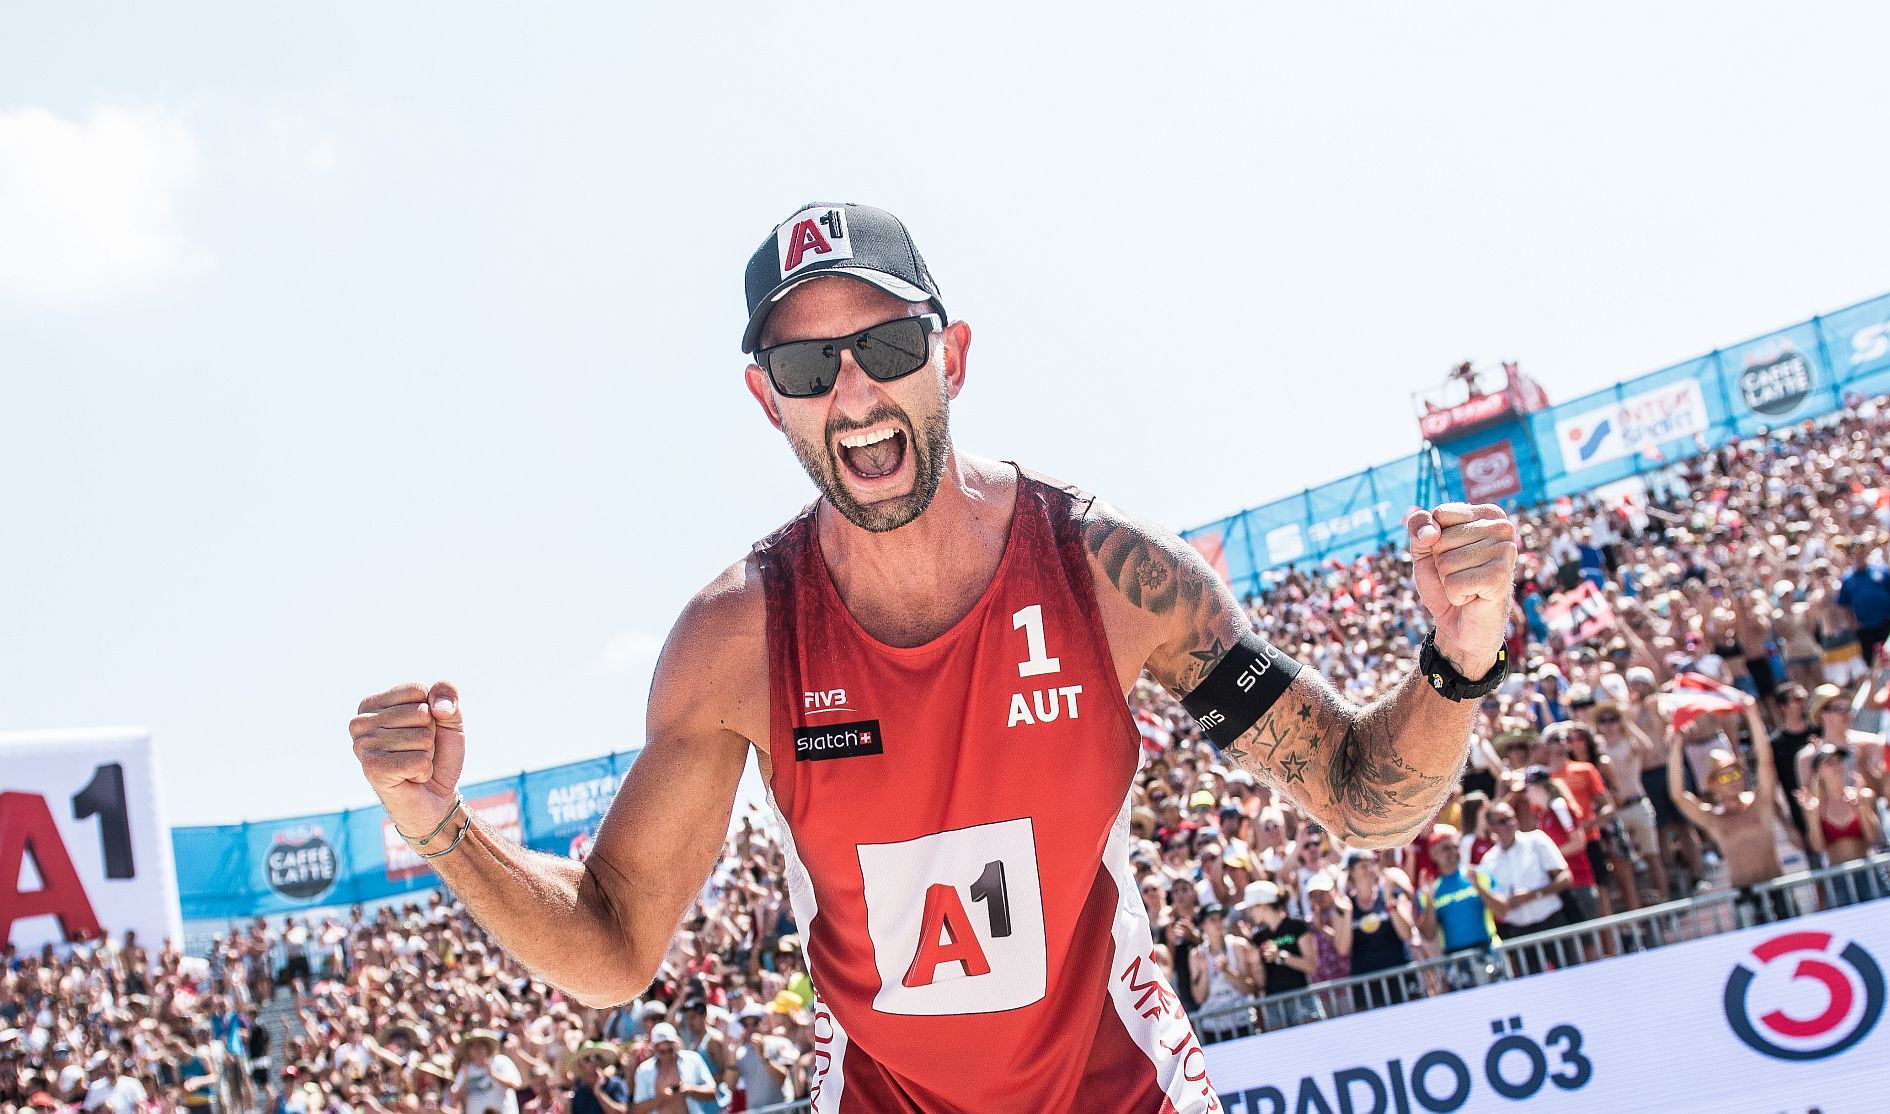 Clemens Doppler 2018 - FOTO © Jörg Mitter/Beach Volleyball Major Series/Red Bull Content Pool